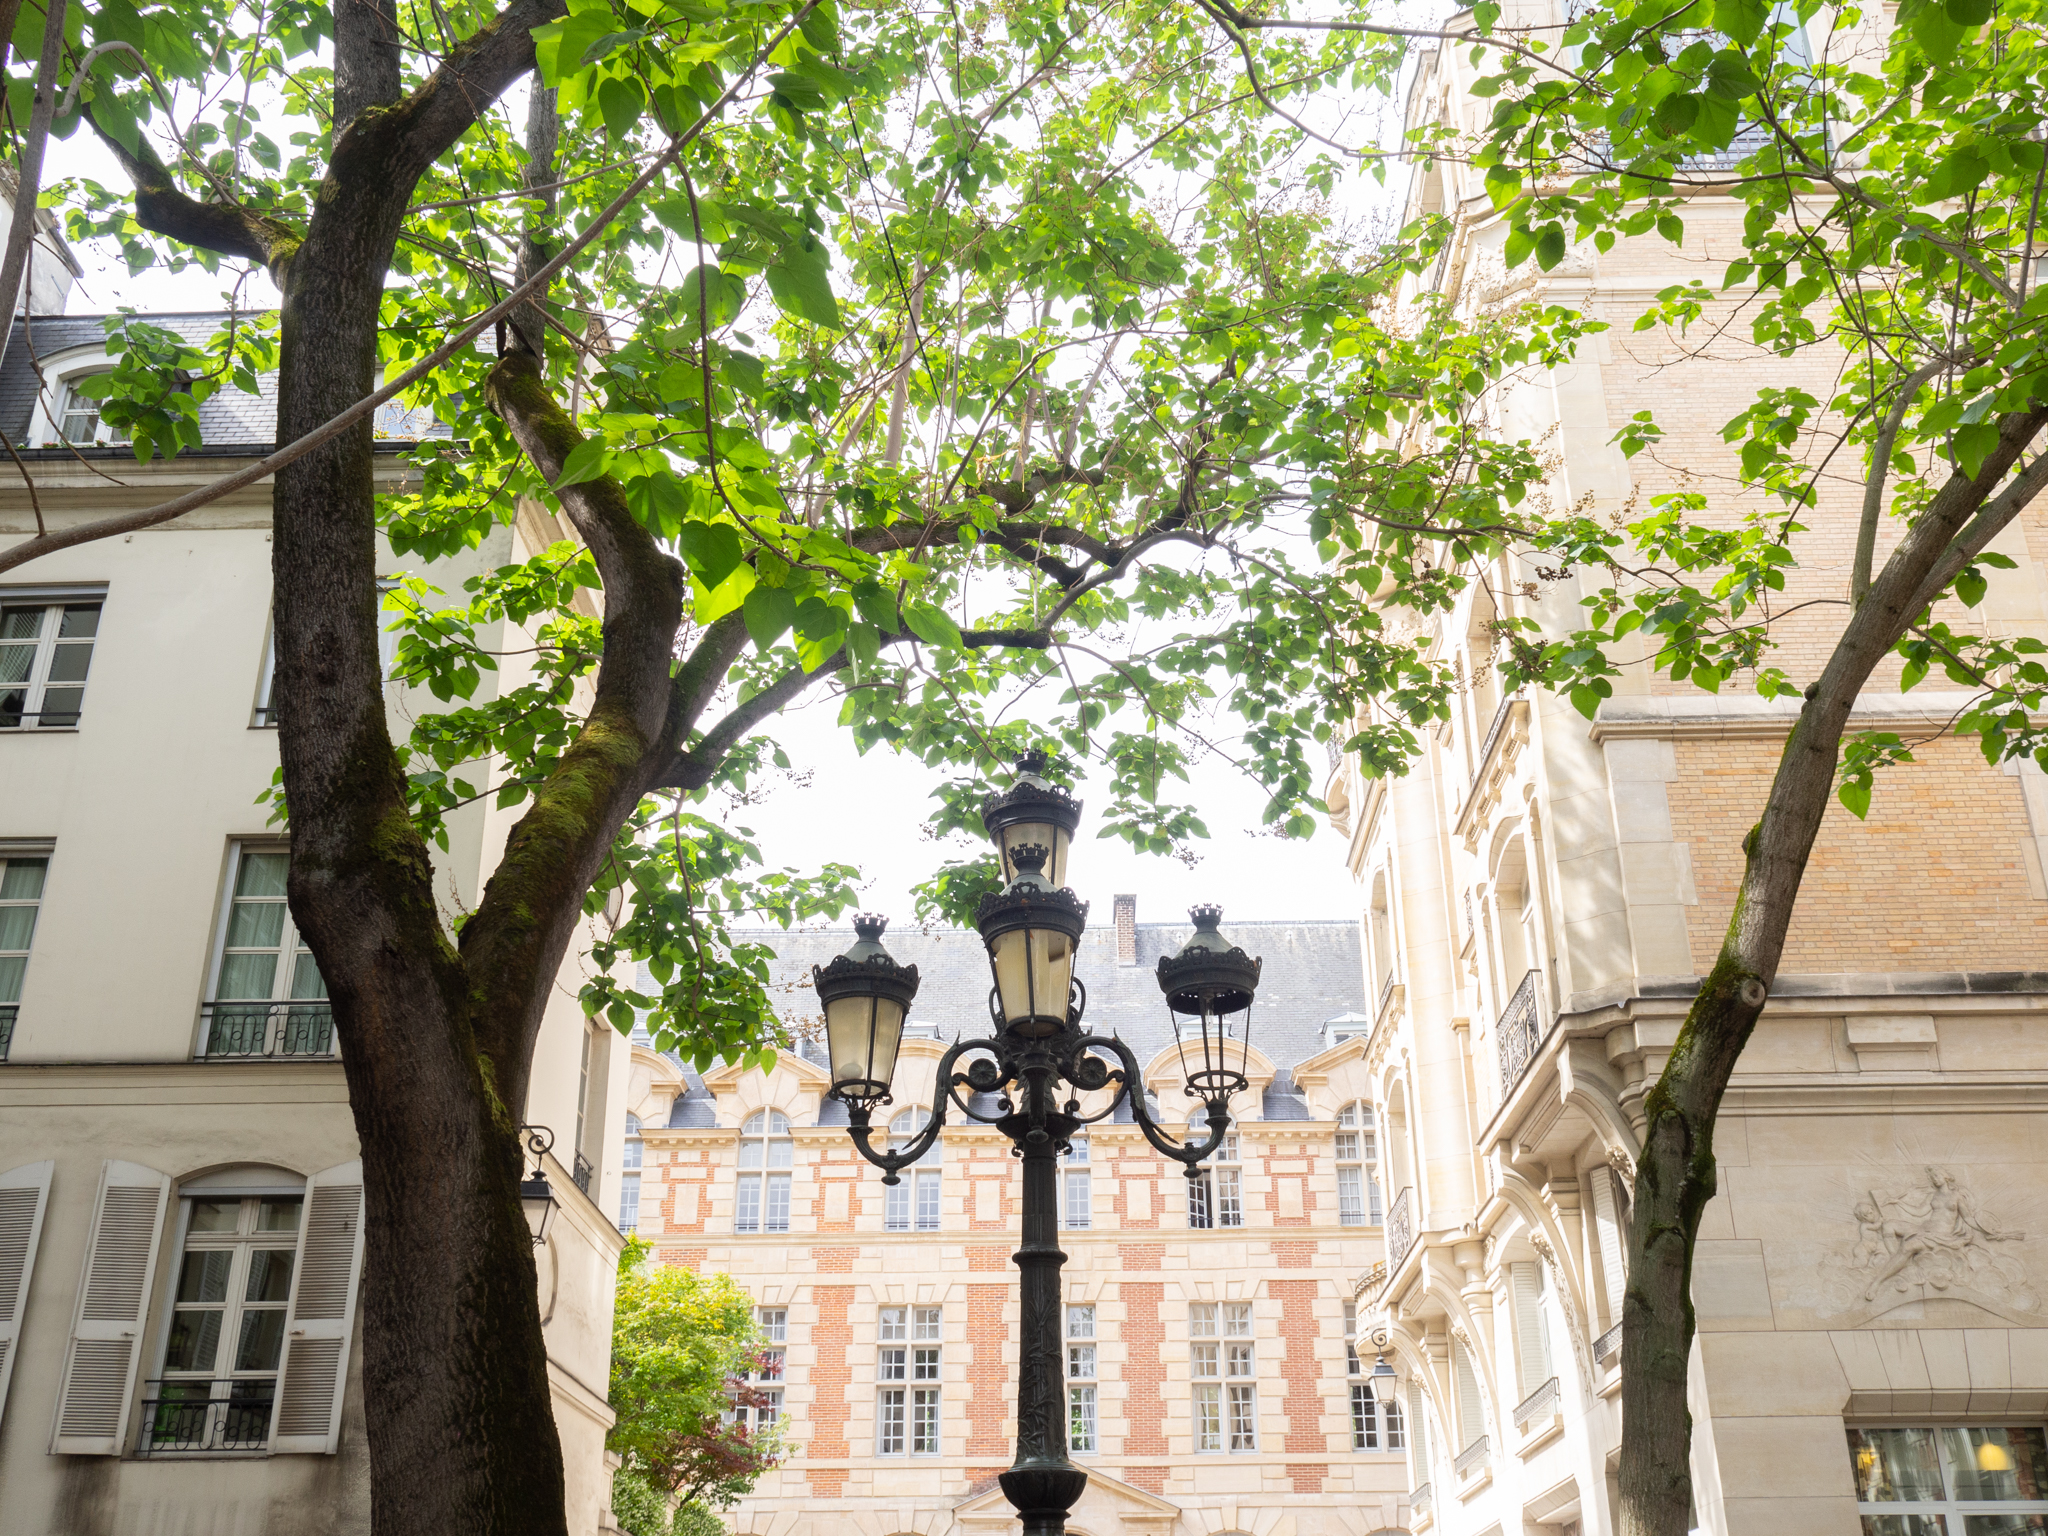 The sun shines through green leaves on trees in Square Trousseau on a spring day in Paris.